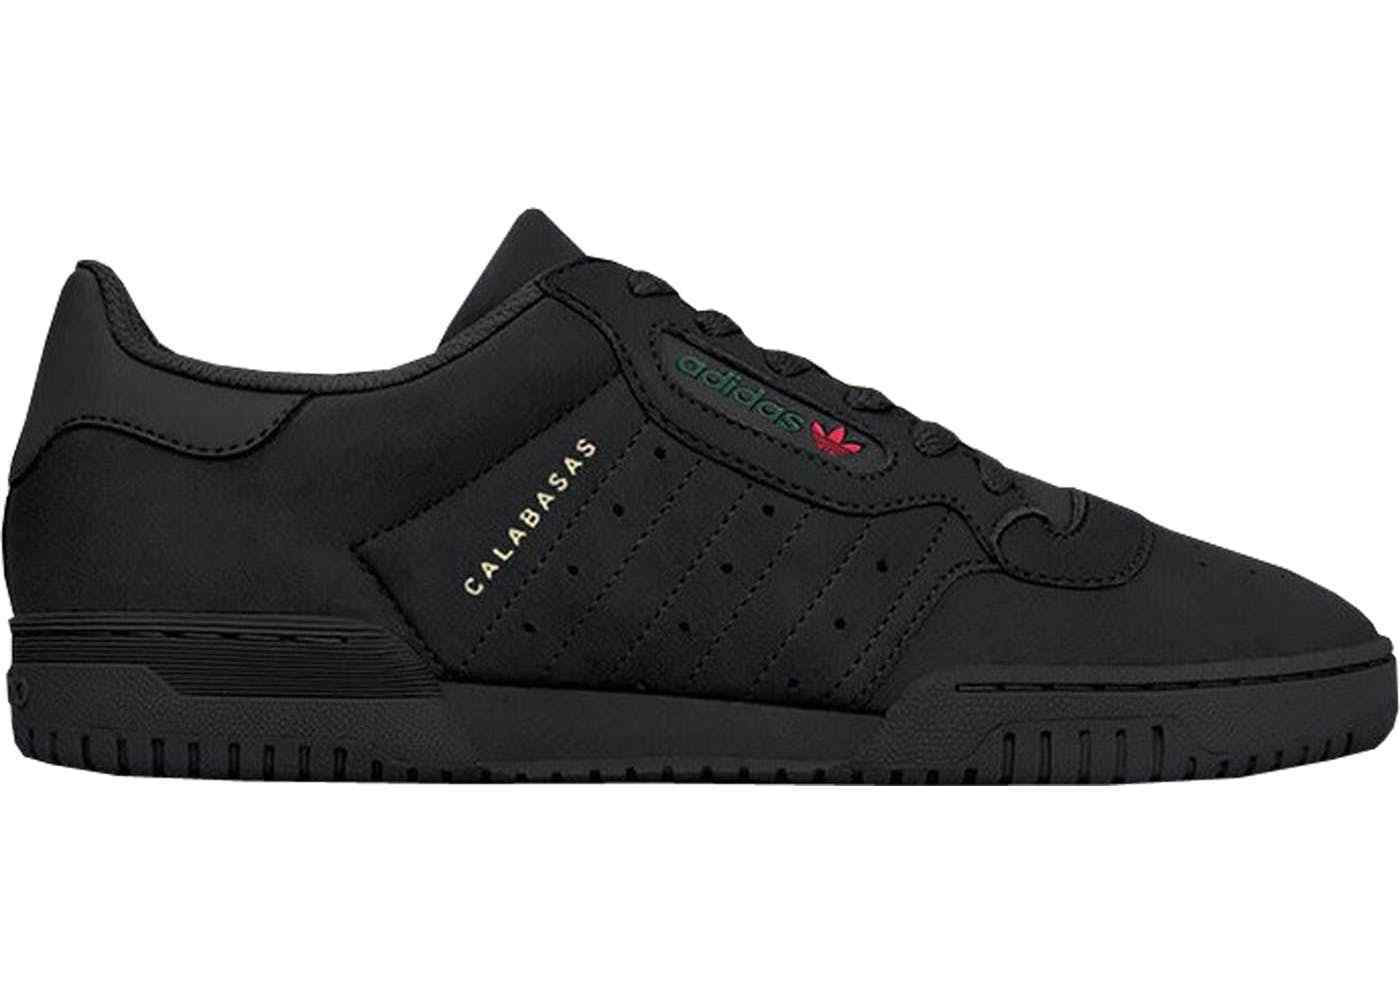 Adidas Yeezy Powerphase Calabasas Price reduction Core Black Brand New SOLD OUT